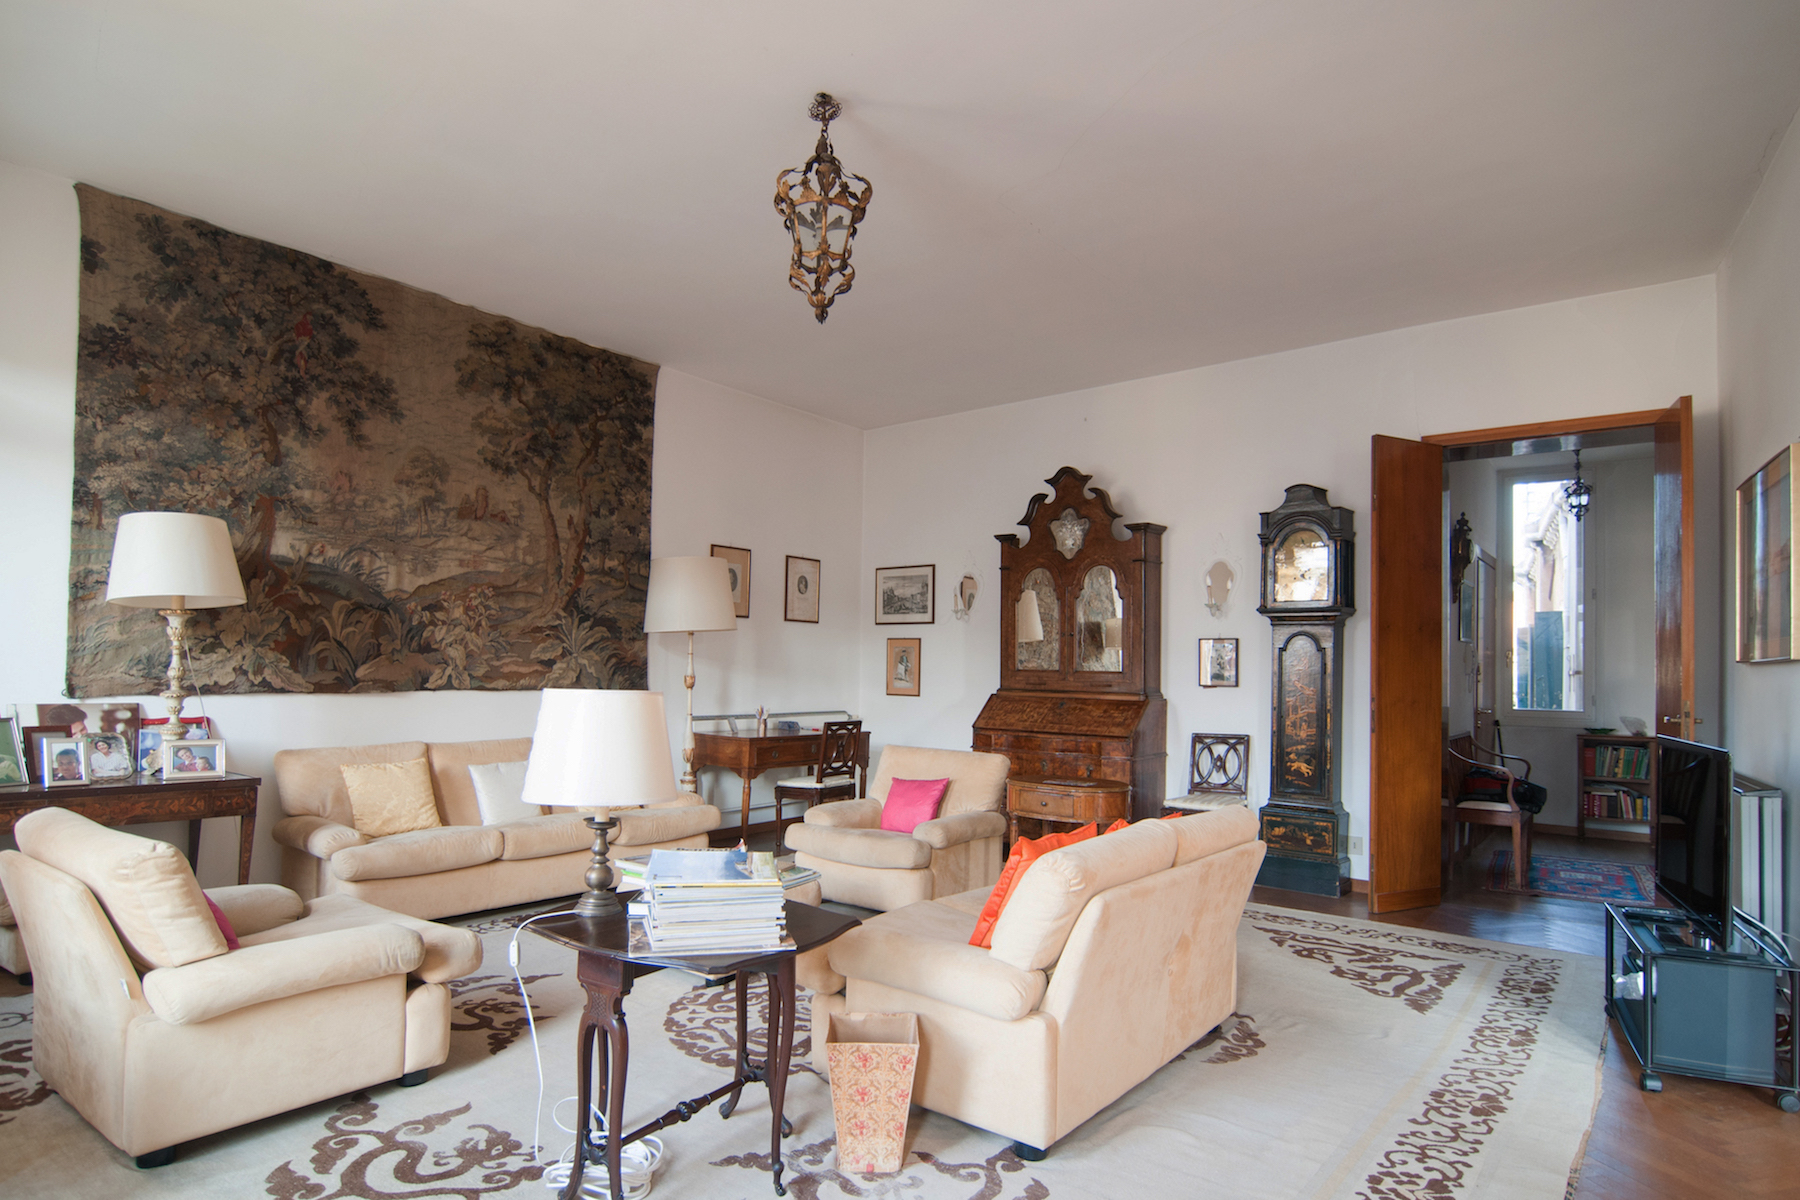 Single Family Home for Sale at Grand Canal Palazzetto top floor apartment with lift and stunning views Venice, Venice, Italy